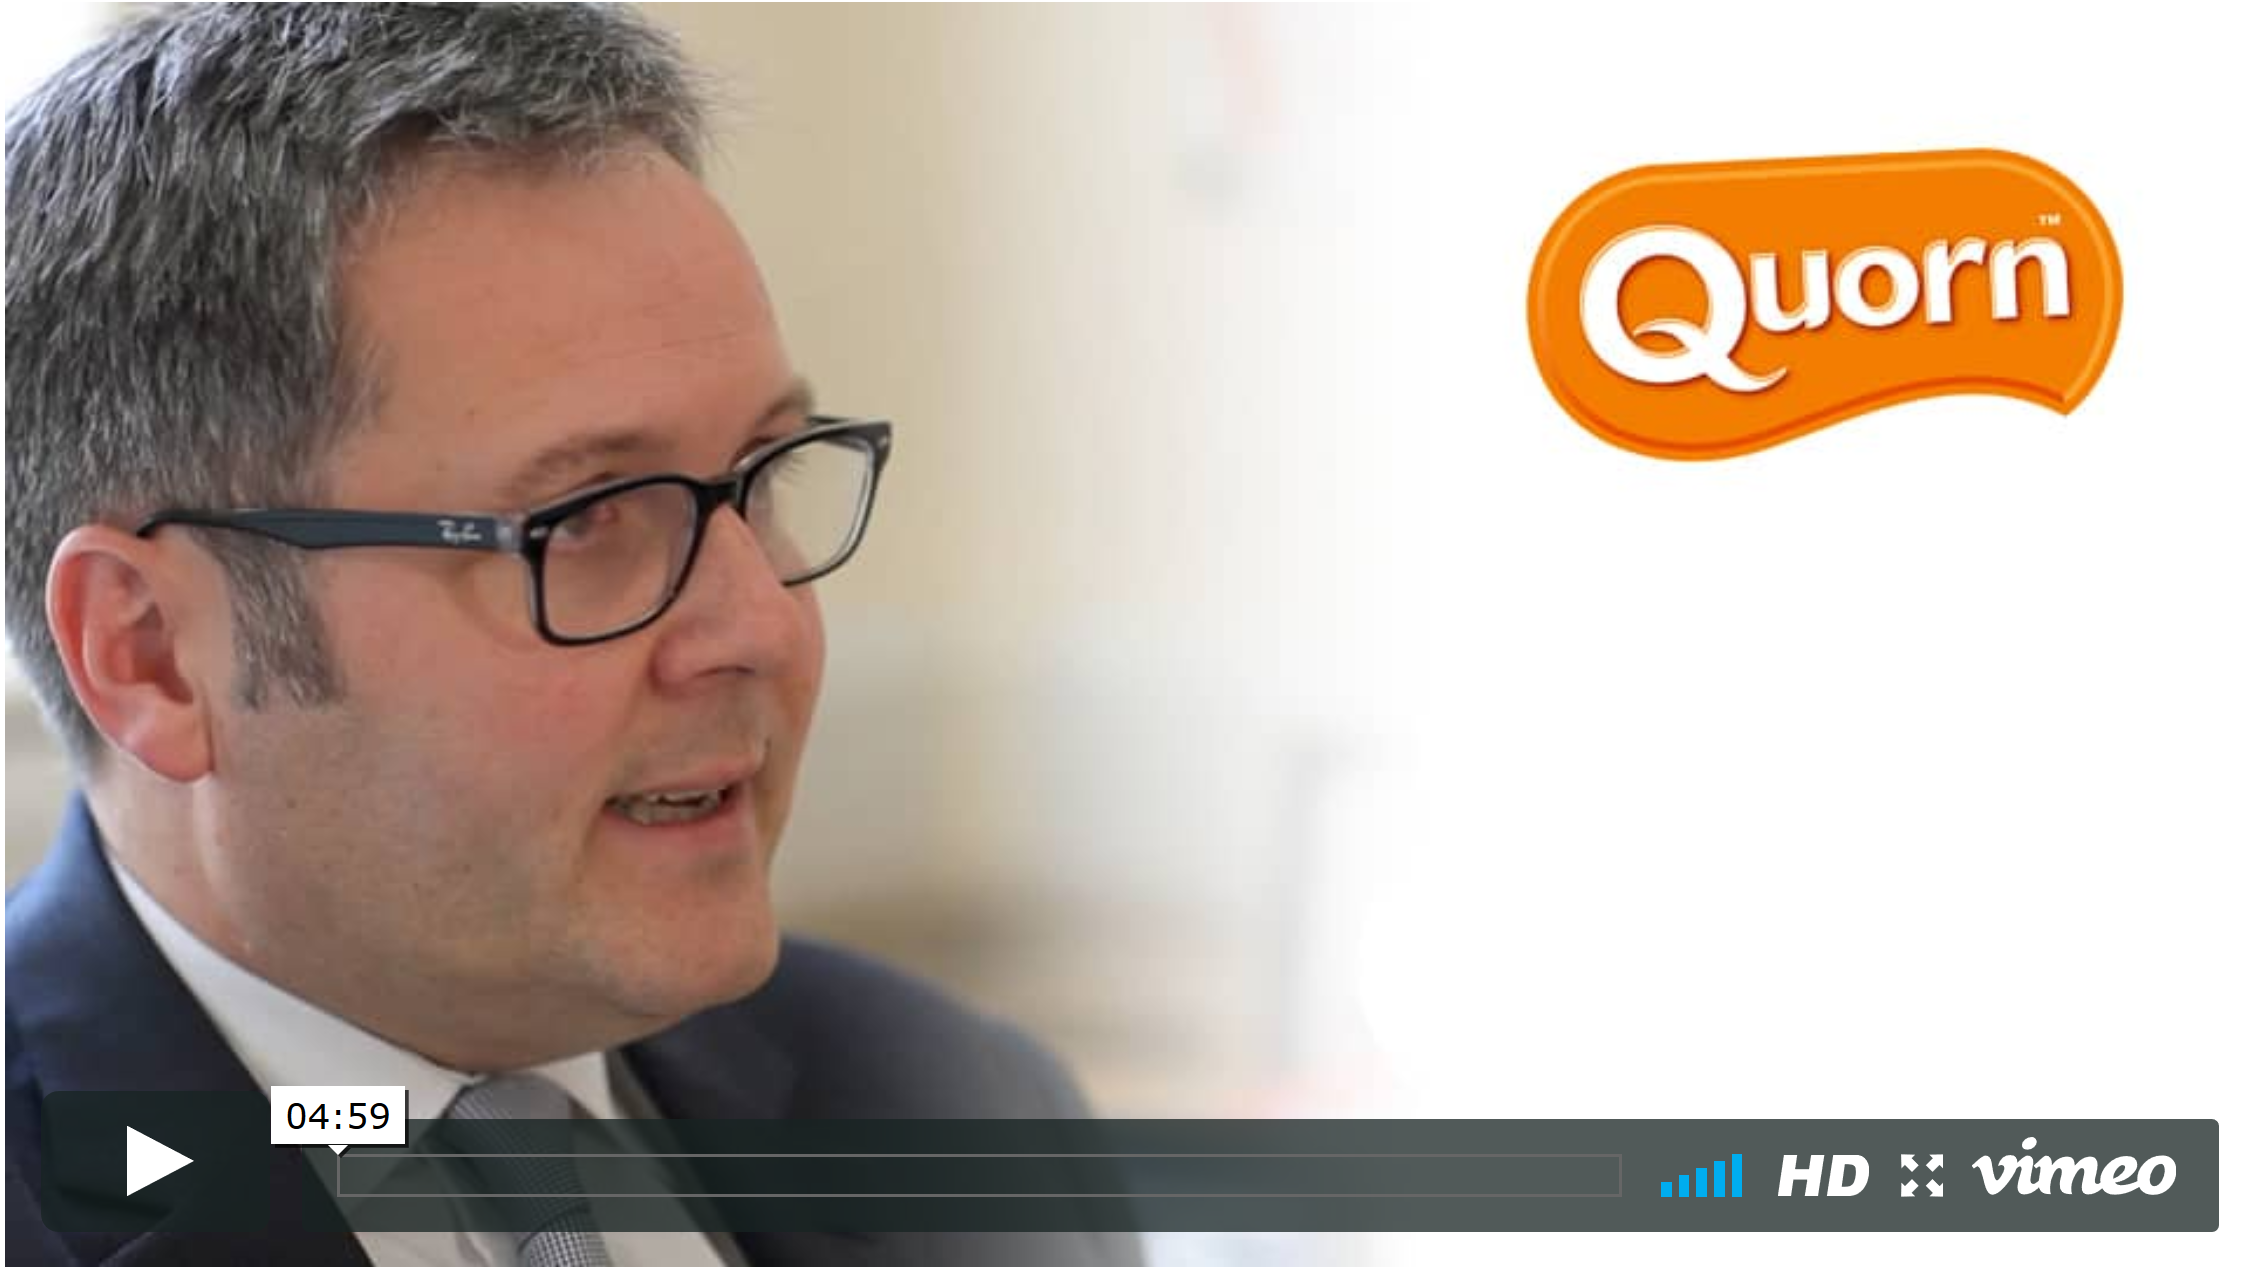 Quorn BOARD Case Study Video